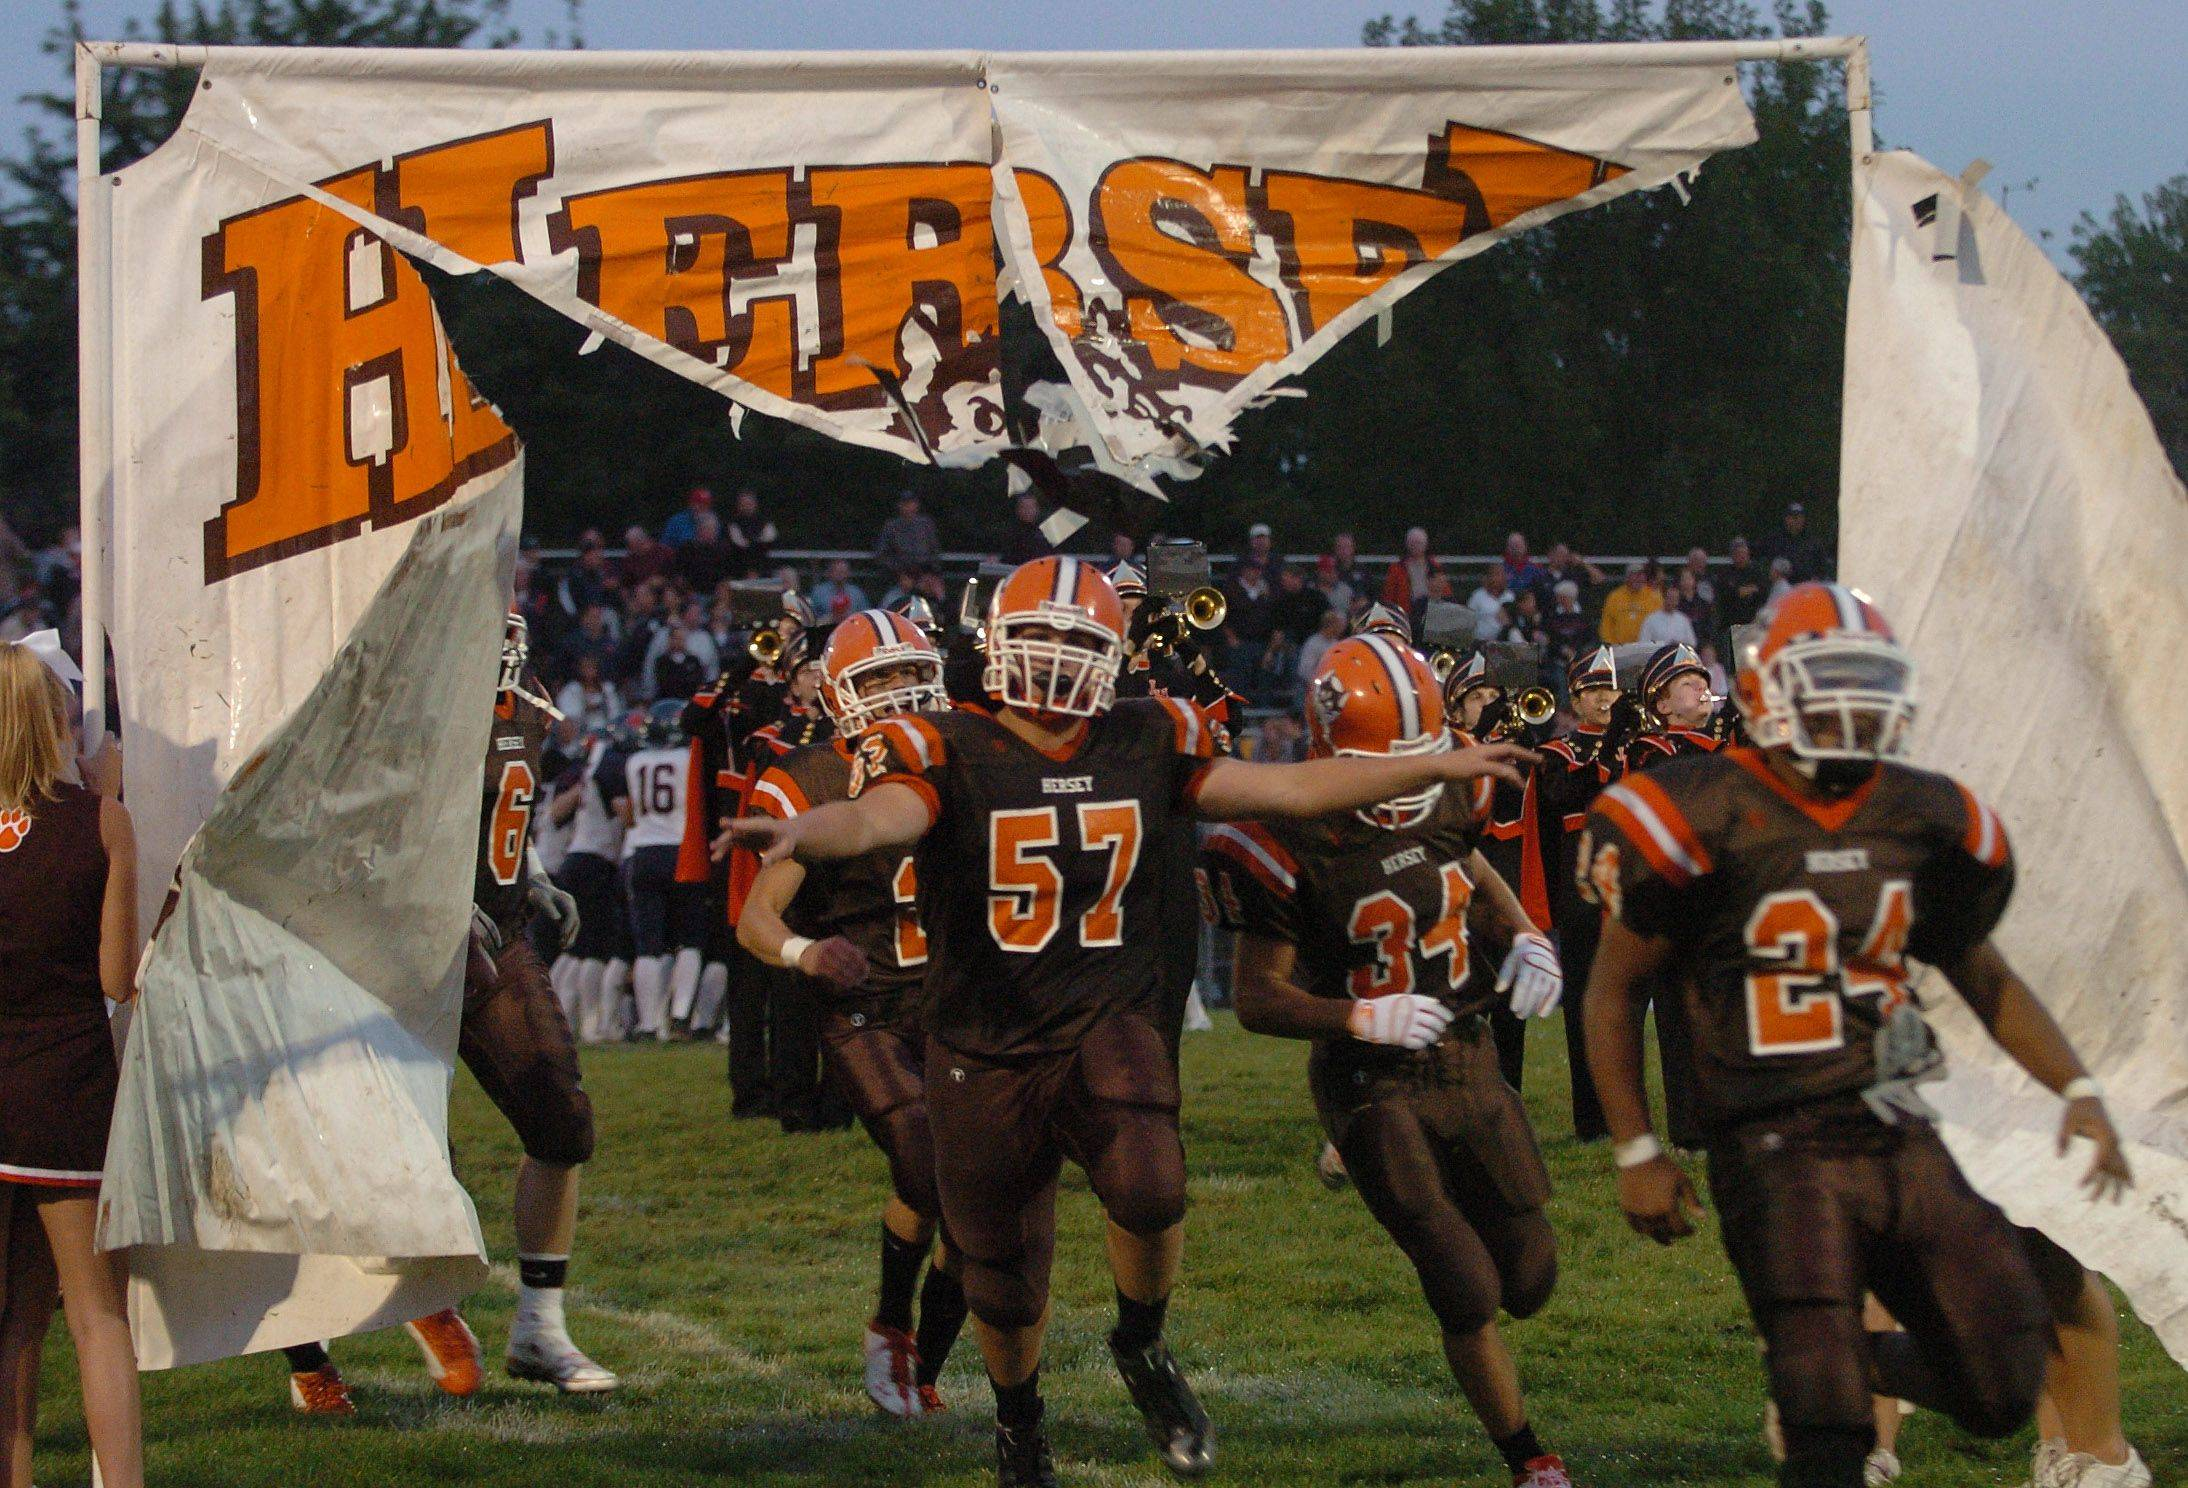 This fall, Hersey's football team will play on a turf field.